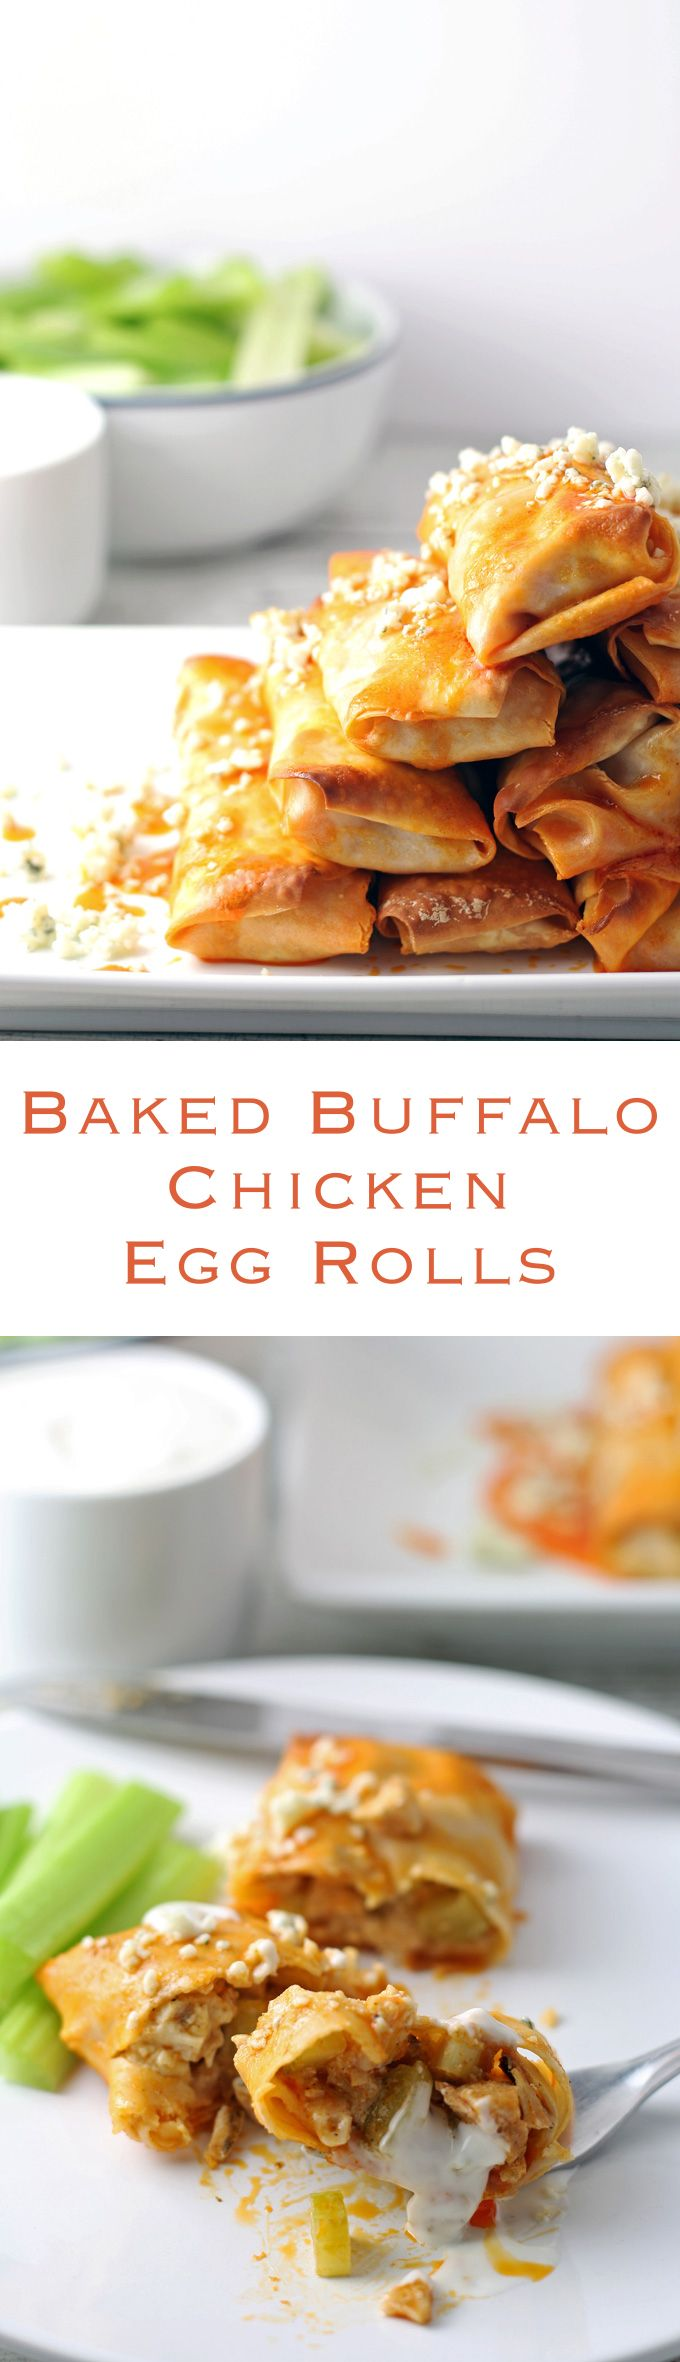 Baked Buffalo Chicken Egg Rolls - great as appetizers! | honeyandbirch.com